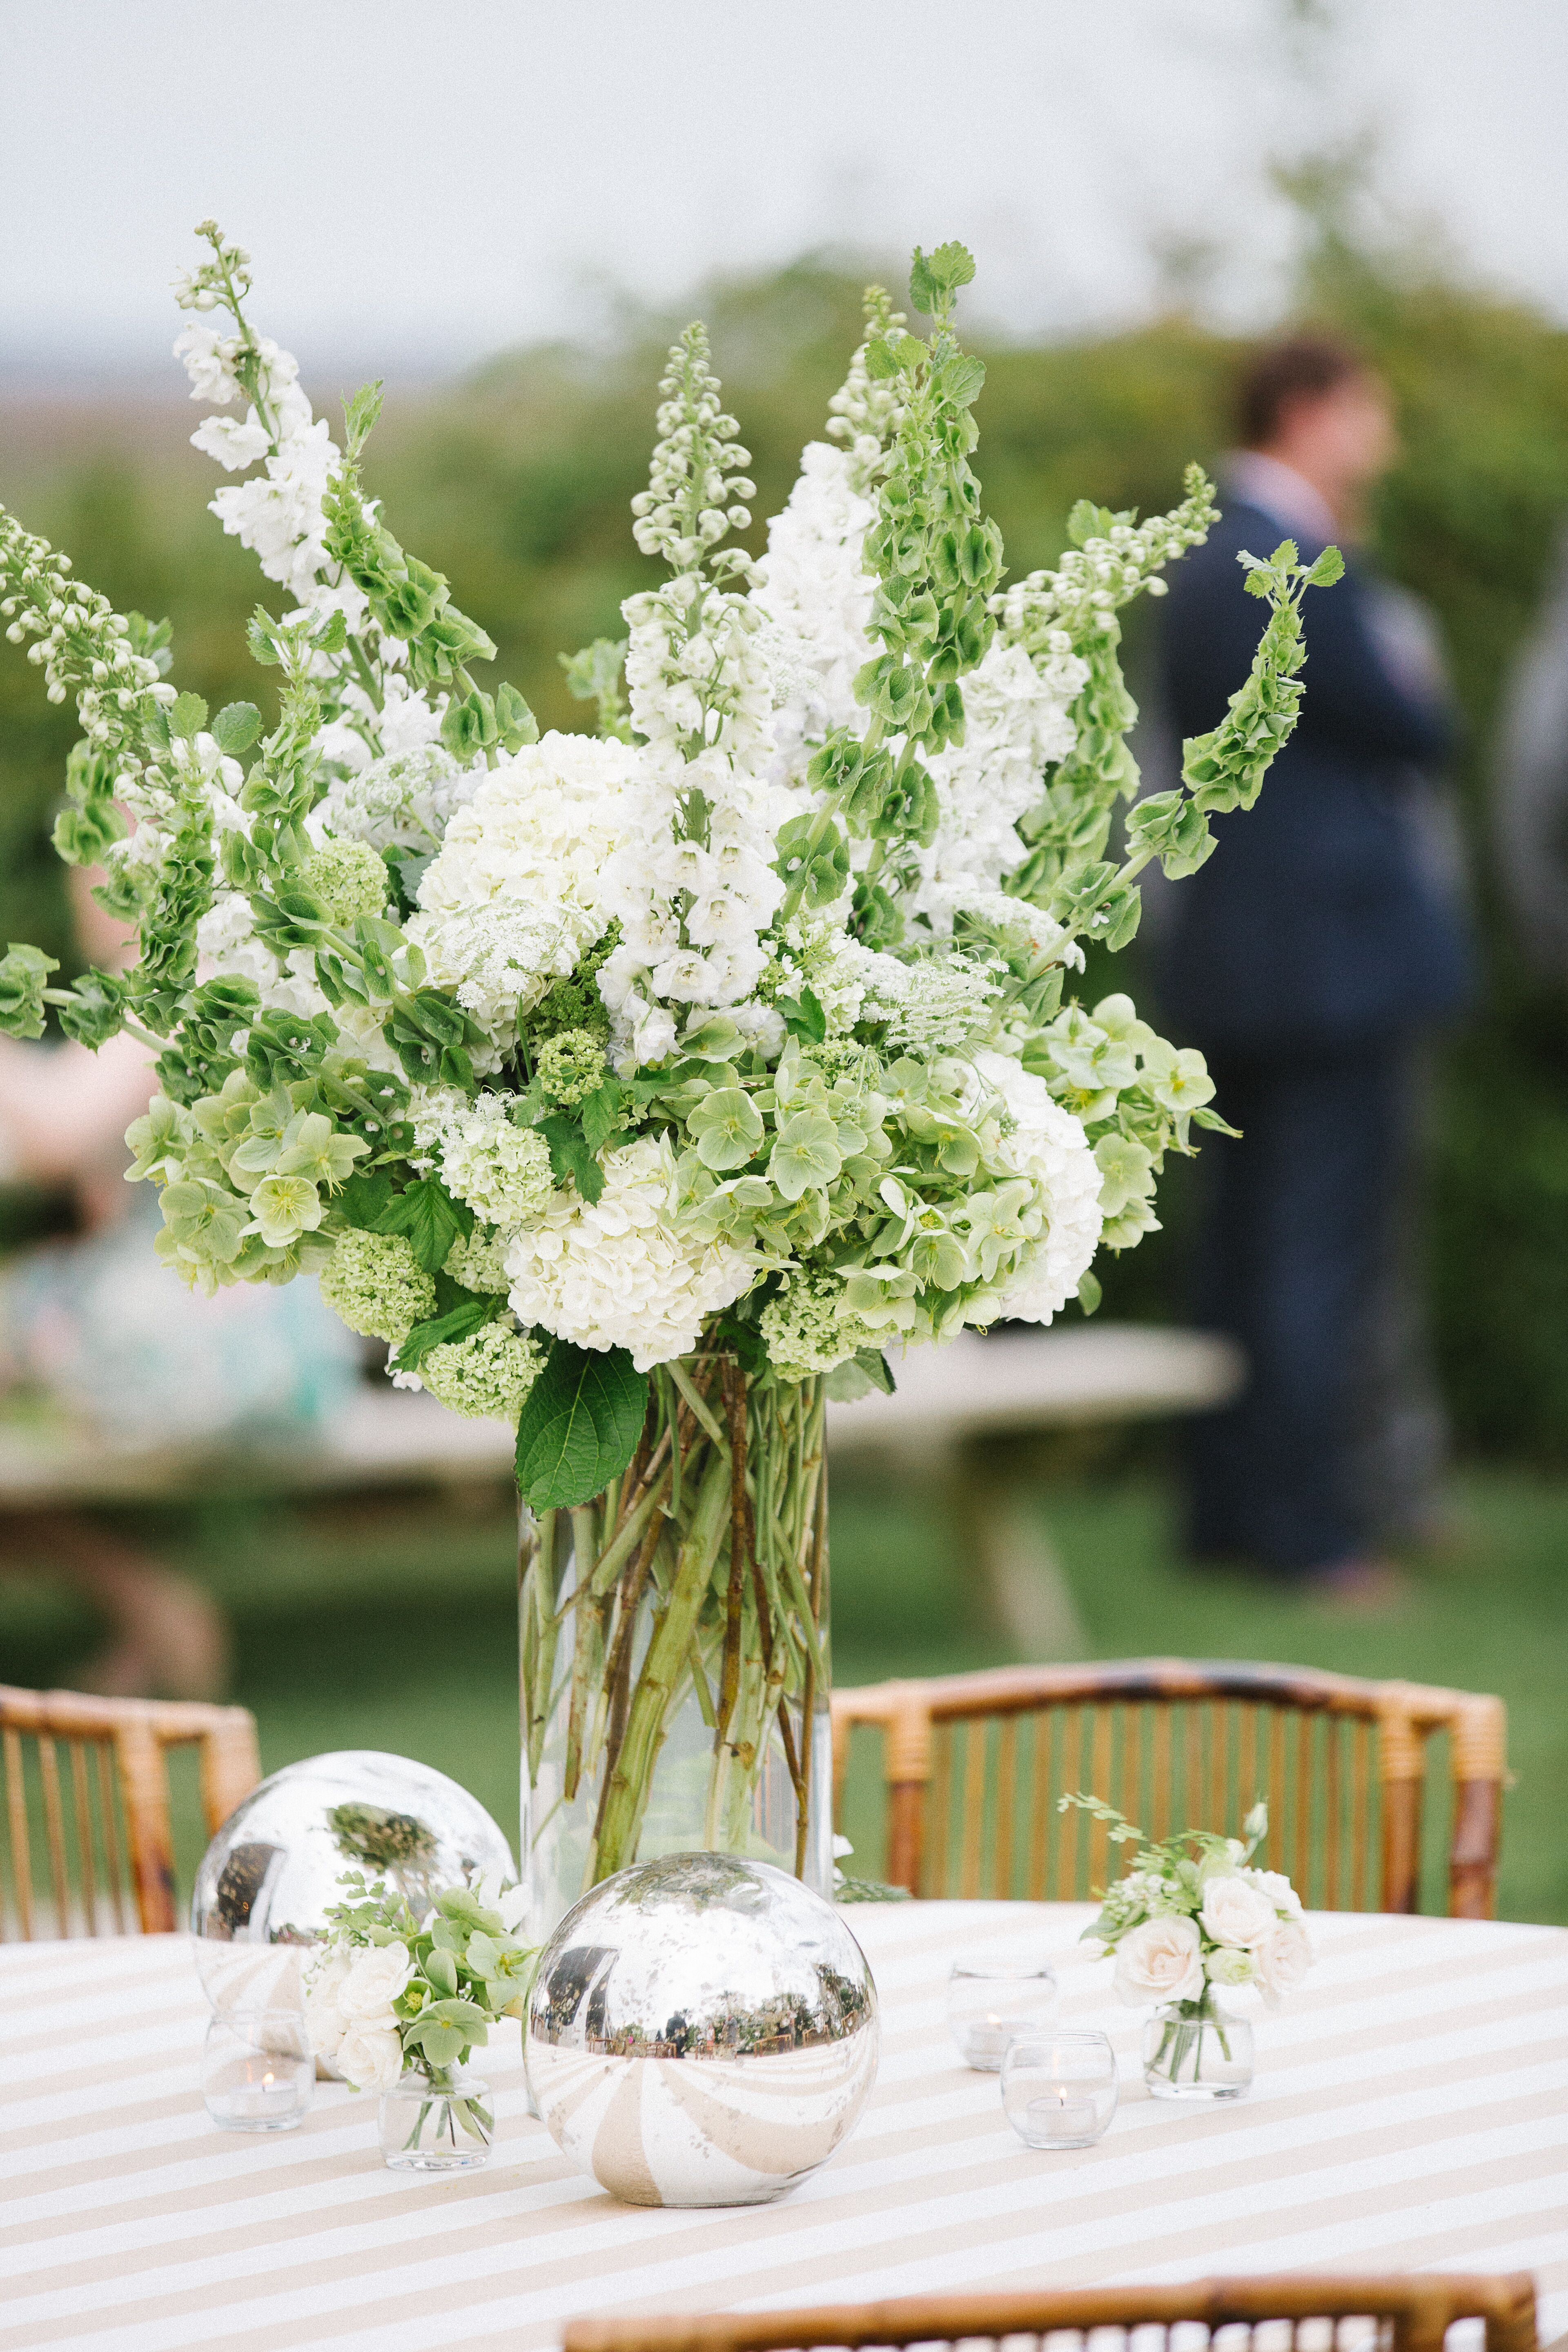 301 Moved Permanently |Tall Green Centerpiece